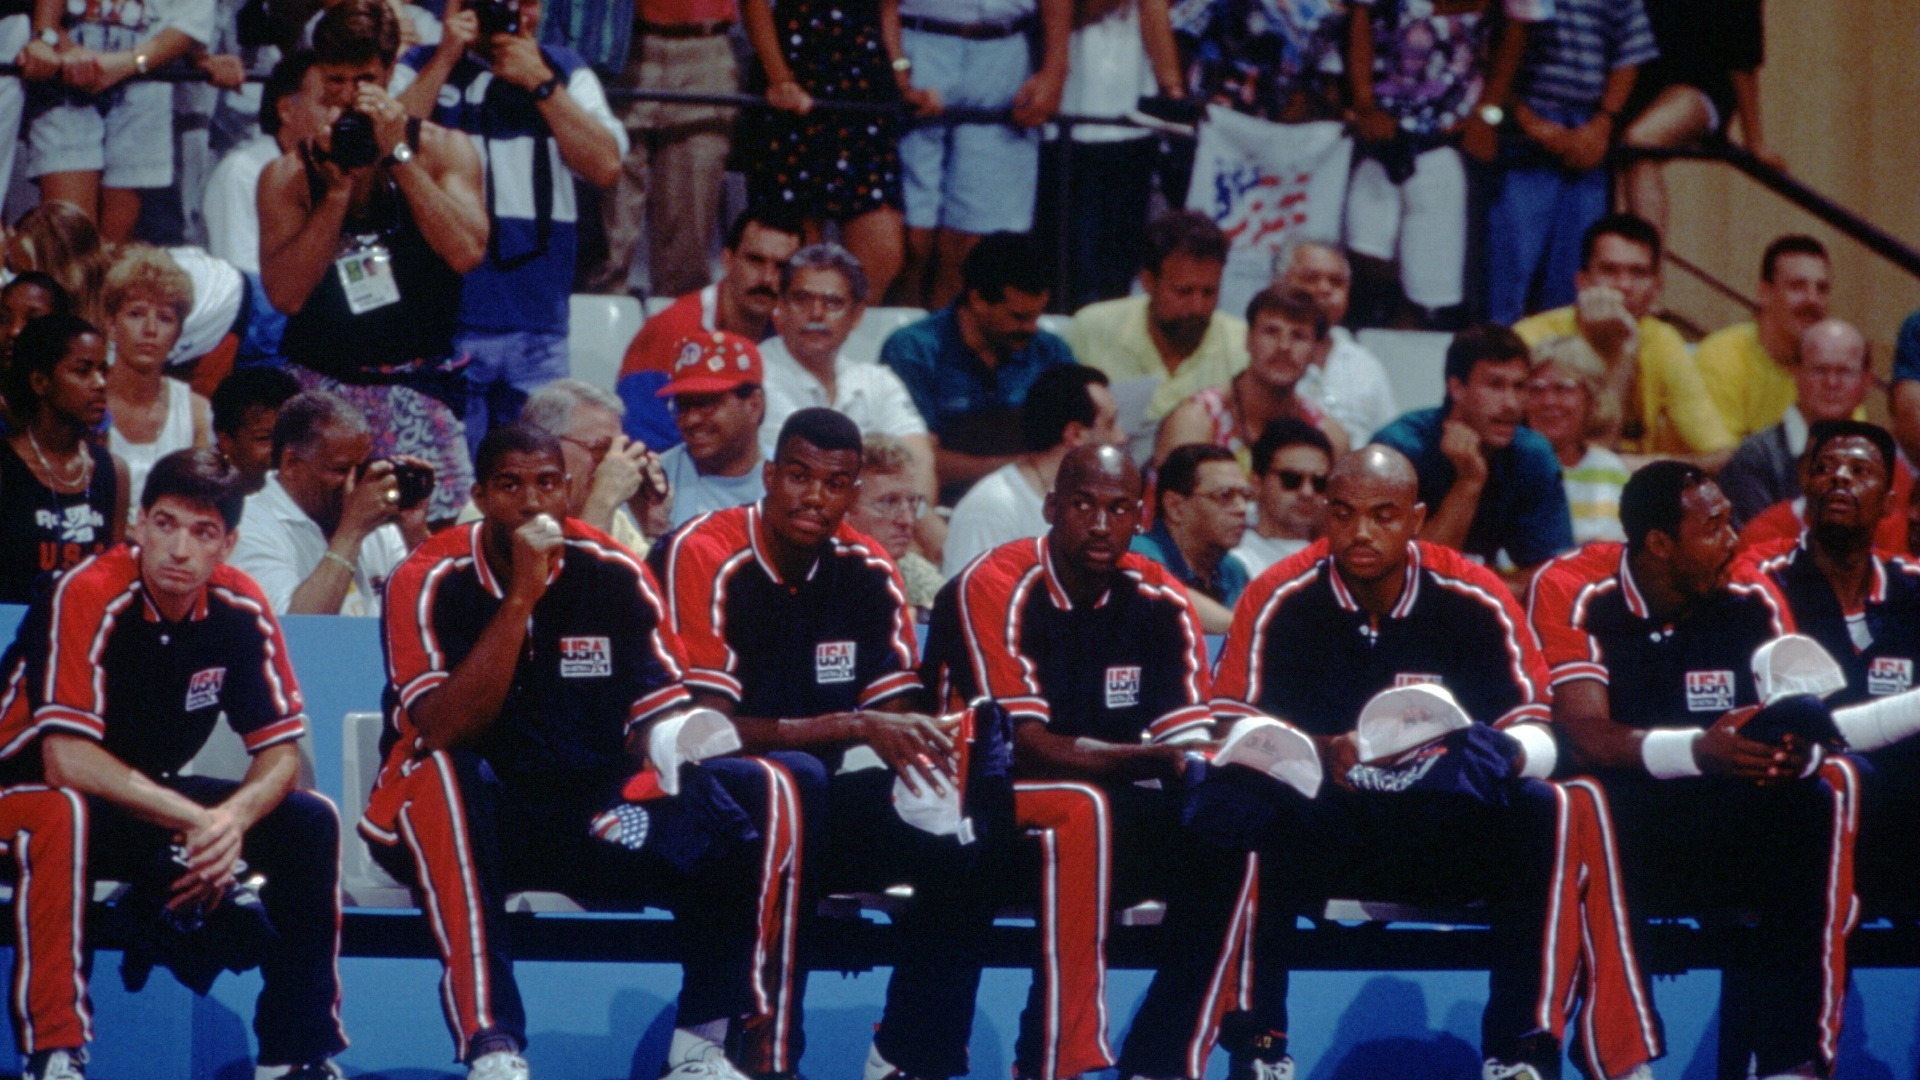 Da esquerda para a direita, Stockton, Magic Johnson, David Robinson, Michael Jordan, Charles Barkley, Karl Malone e Patrick Ewing